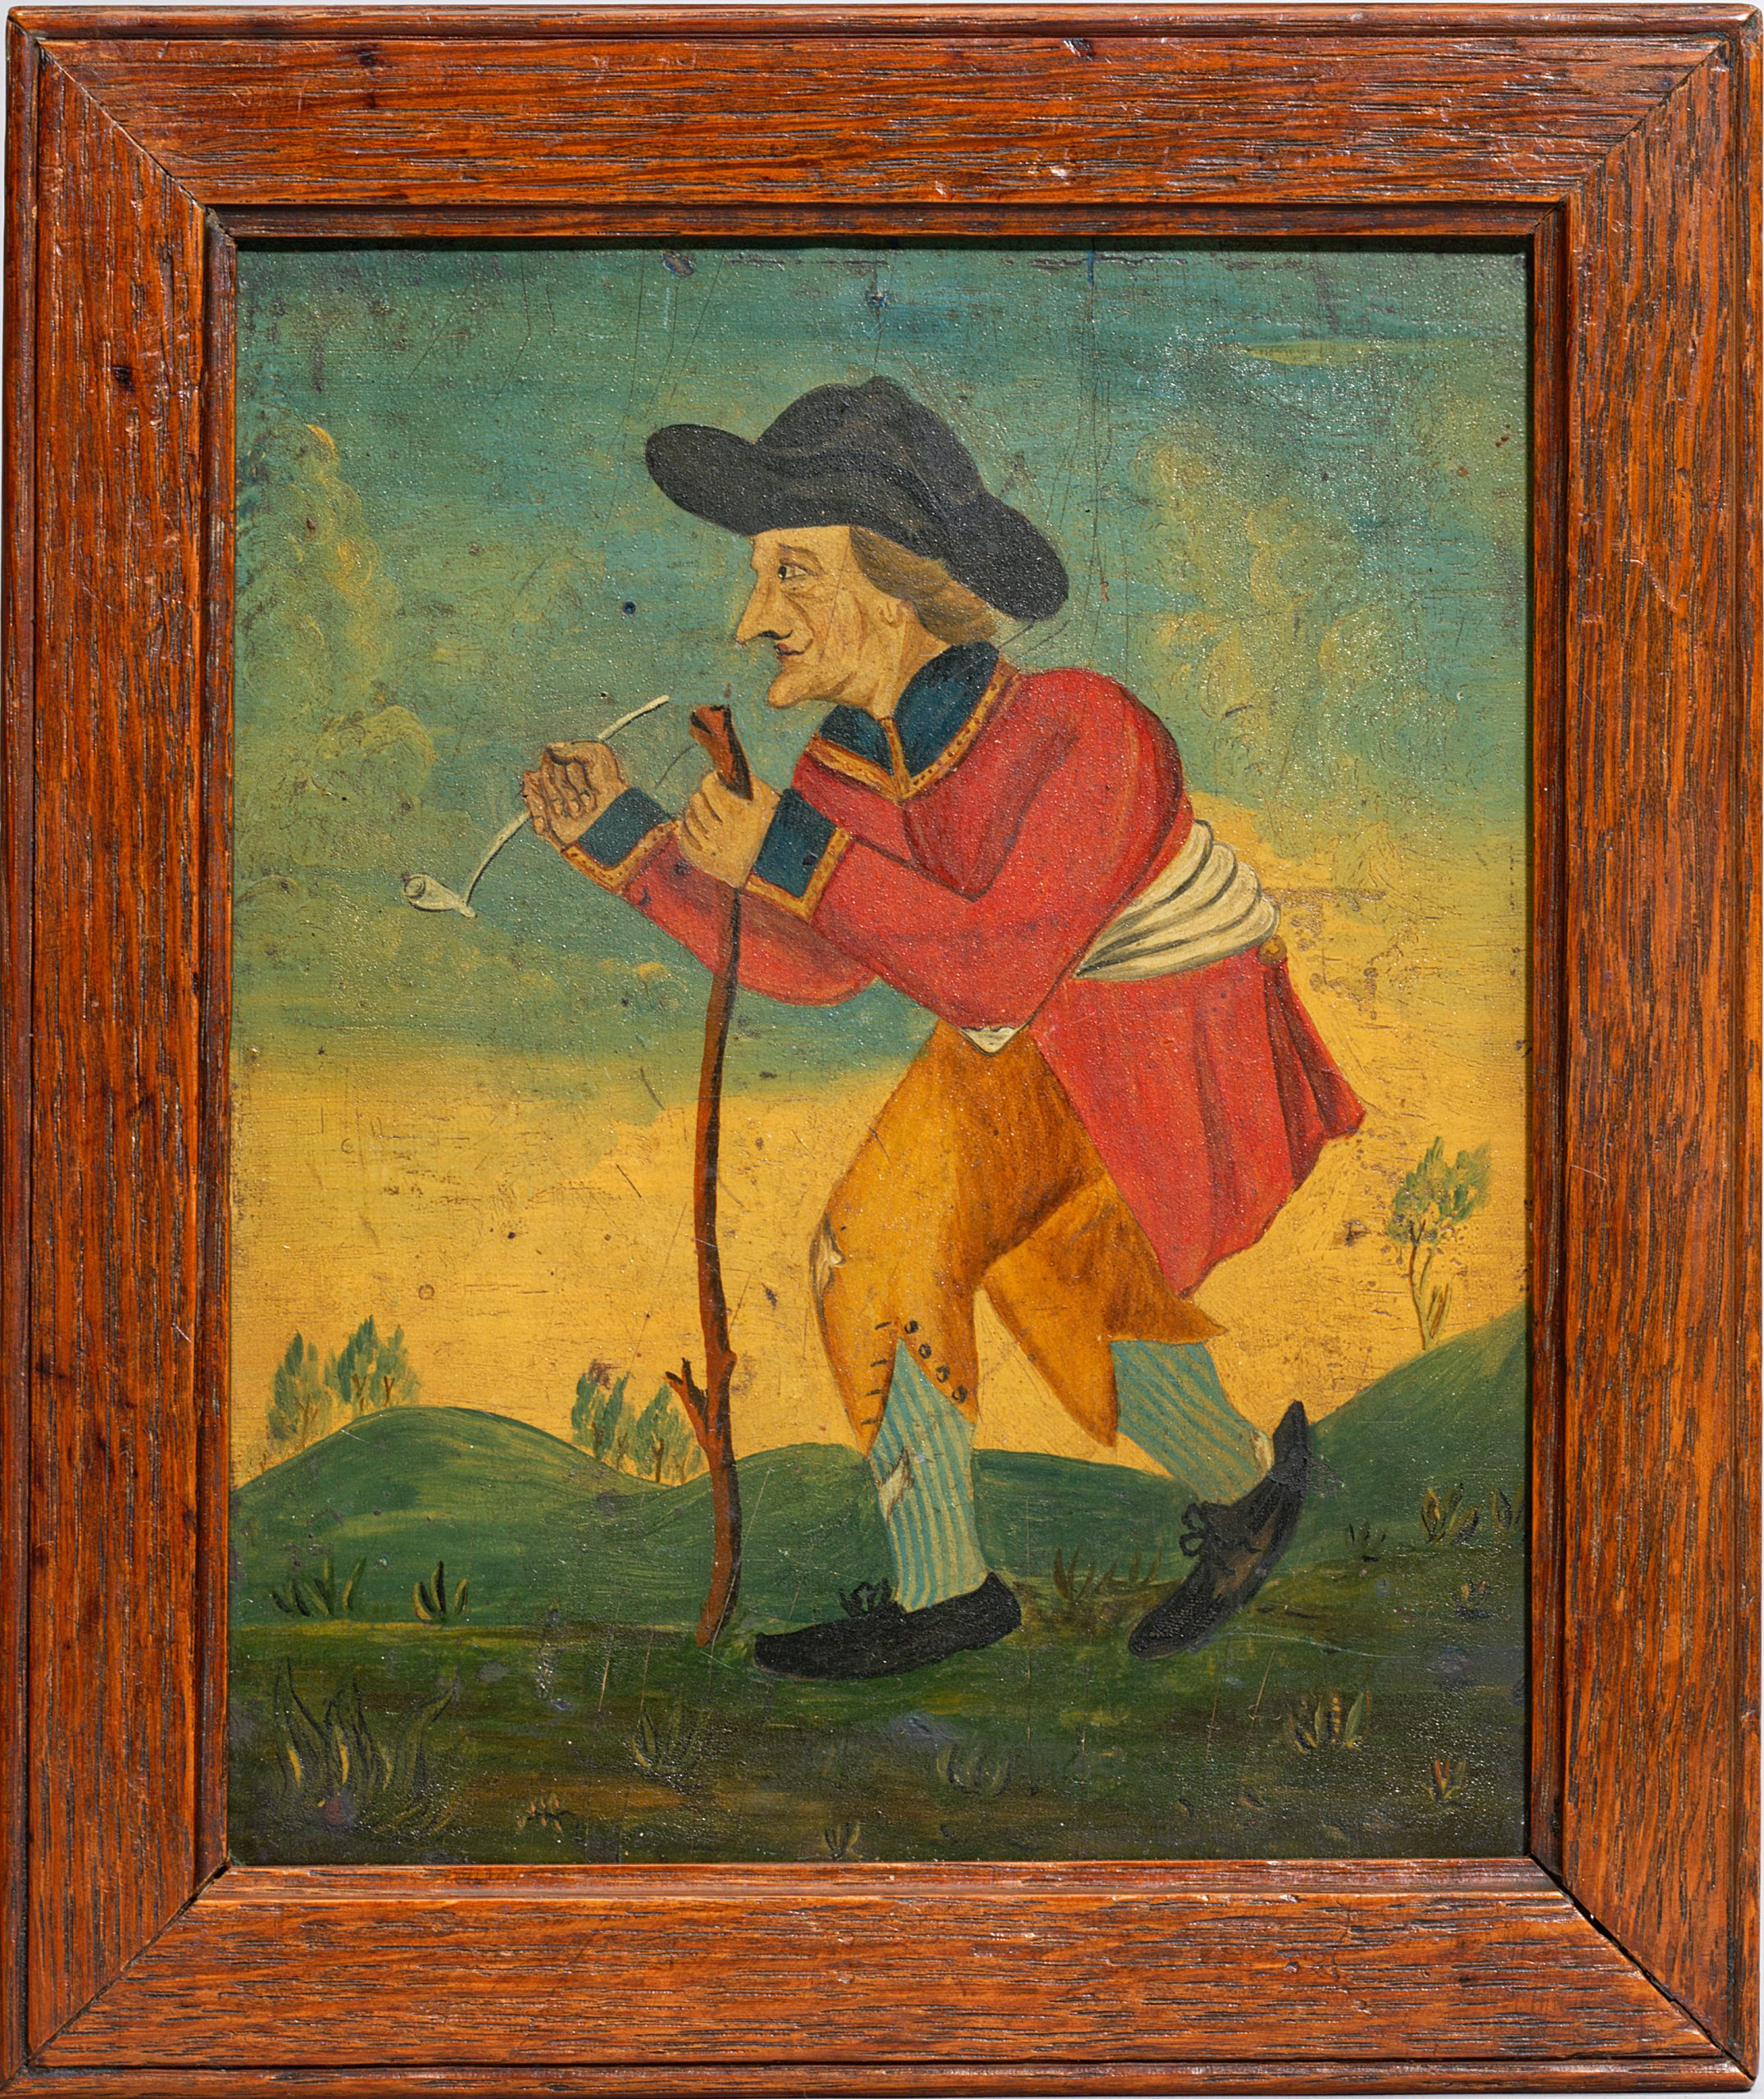 Image of Old Soldier – A Georgian Panel Painting